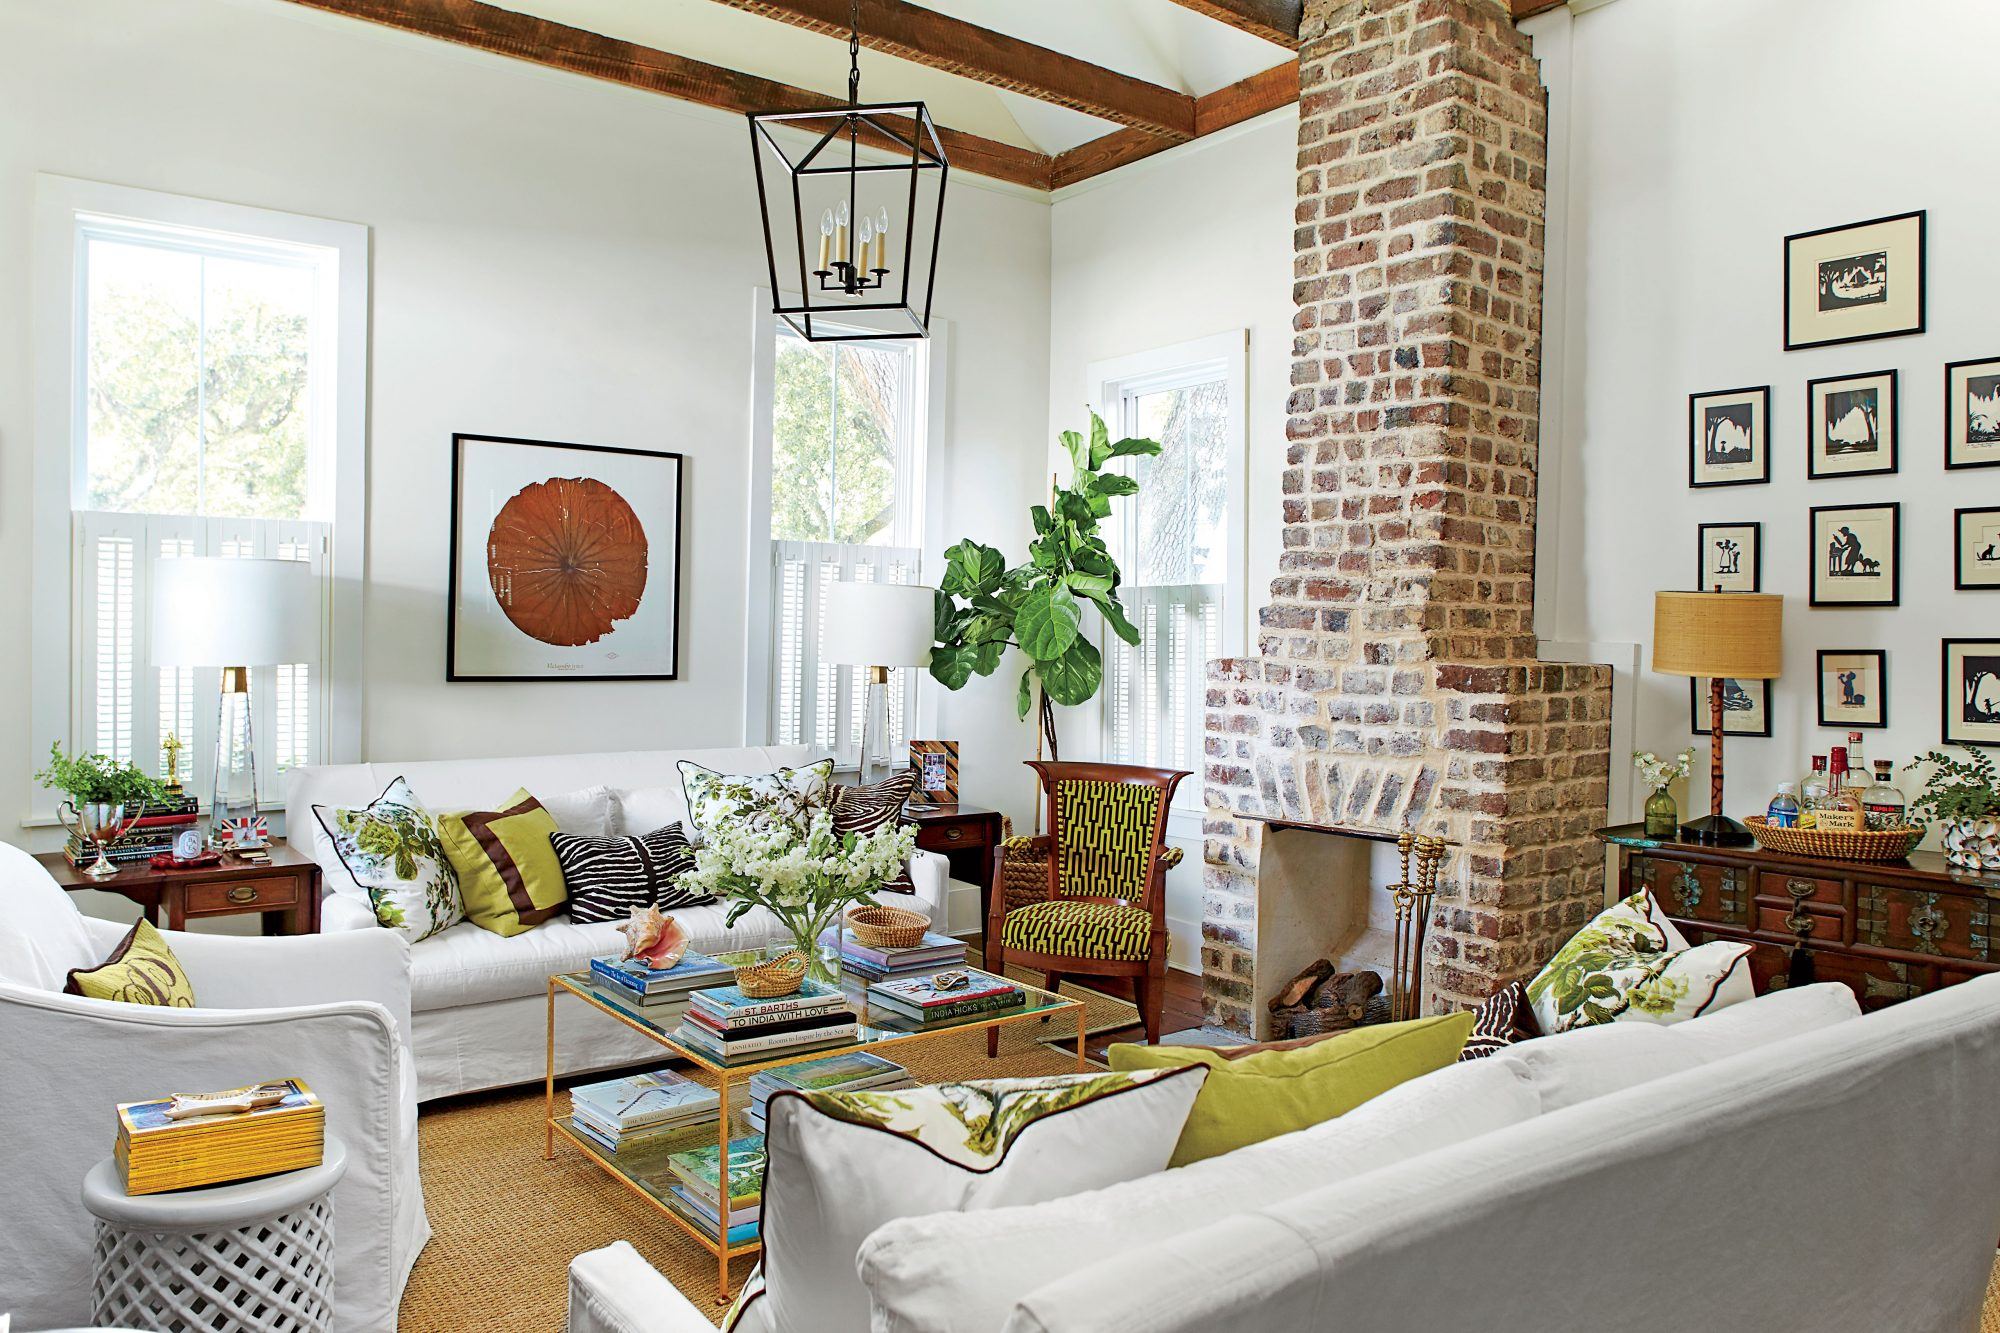 The Best Paint Colors for Whitewashing Brick